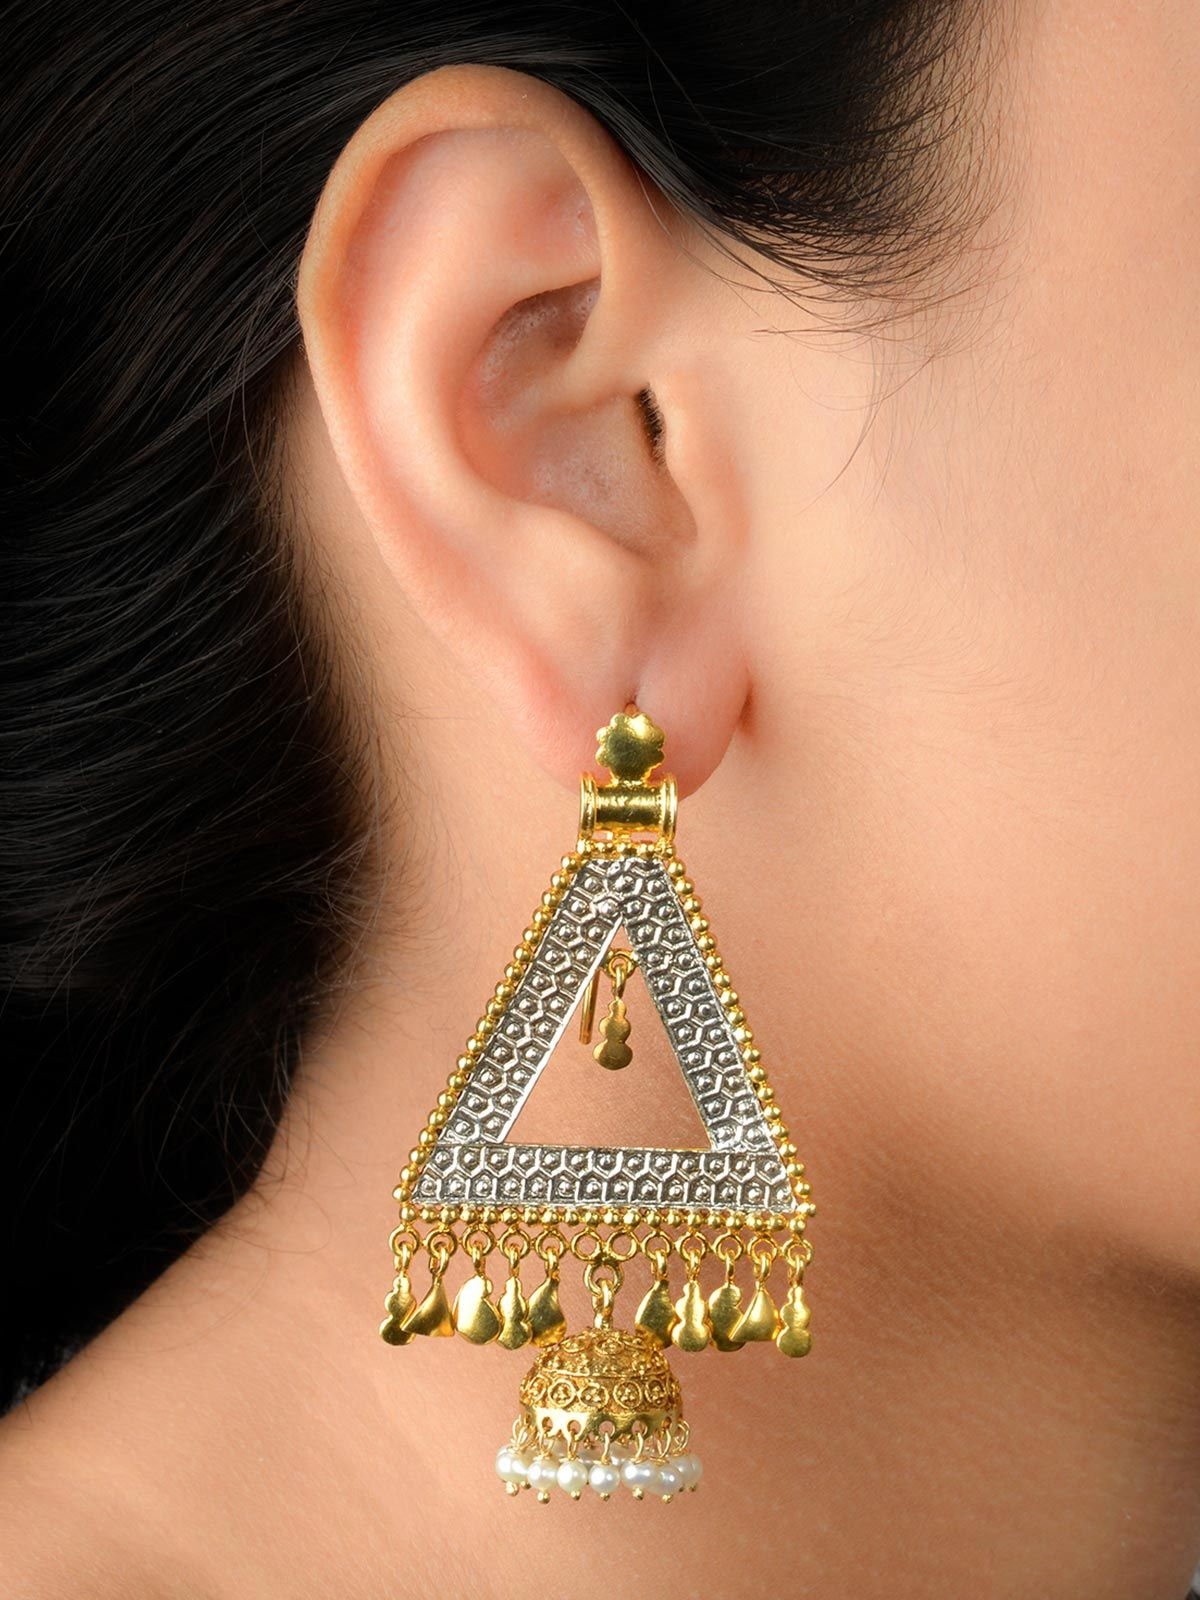 Engraved two-tone triangular silver earrings